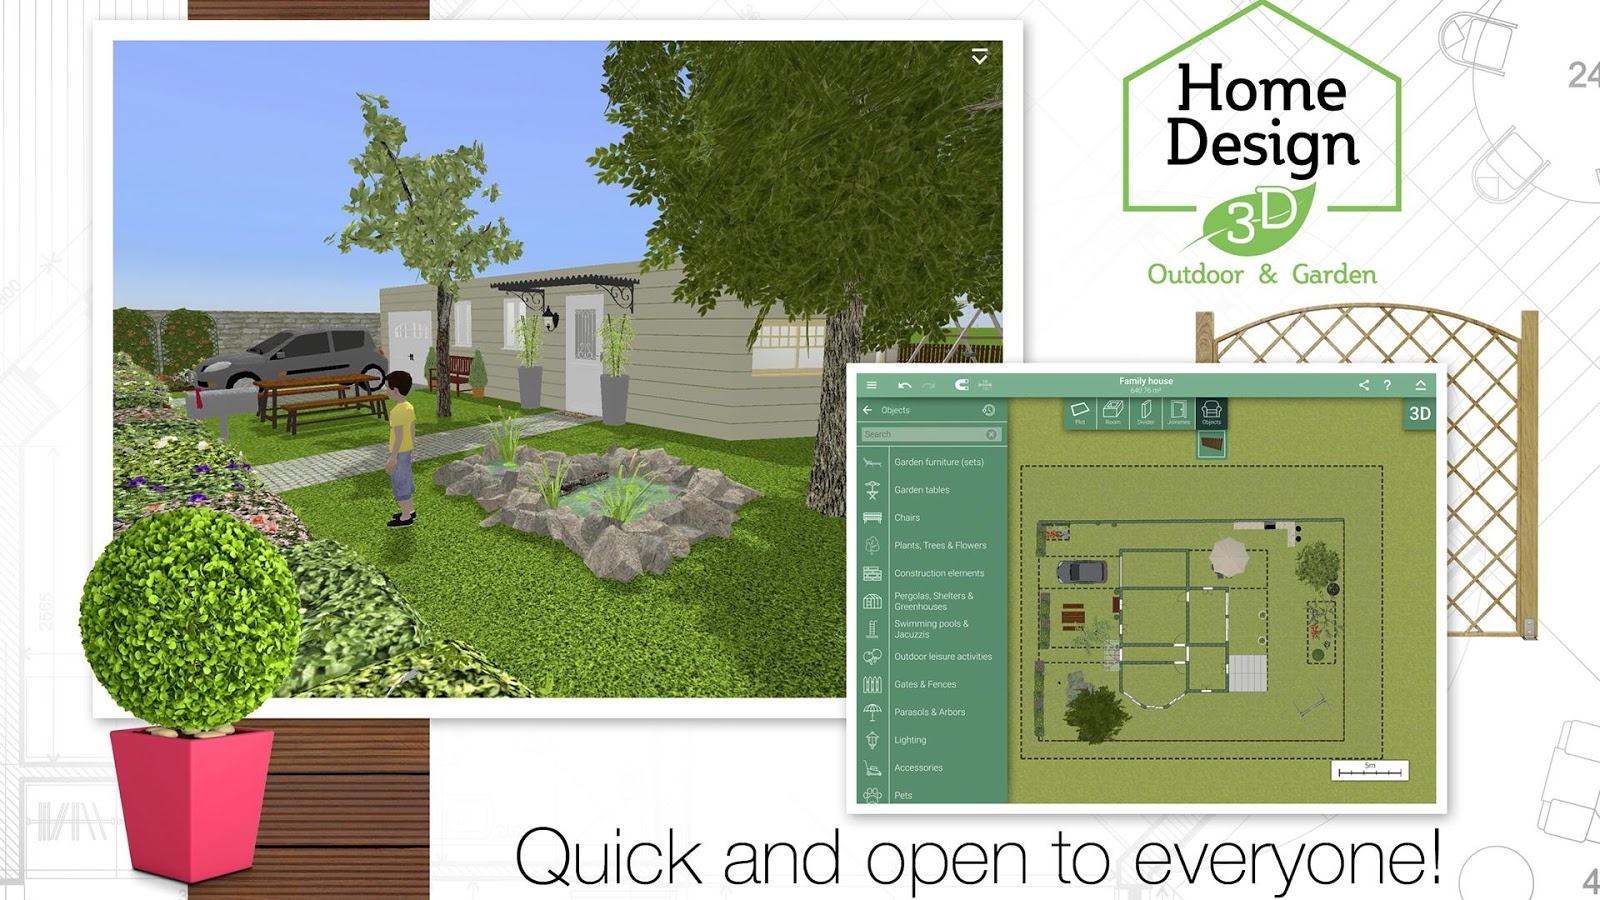 home design 3d outdoor garden android apps on google play bromo social mobile app template freebiesbug